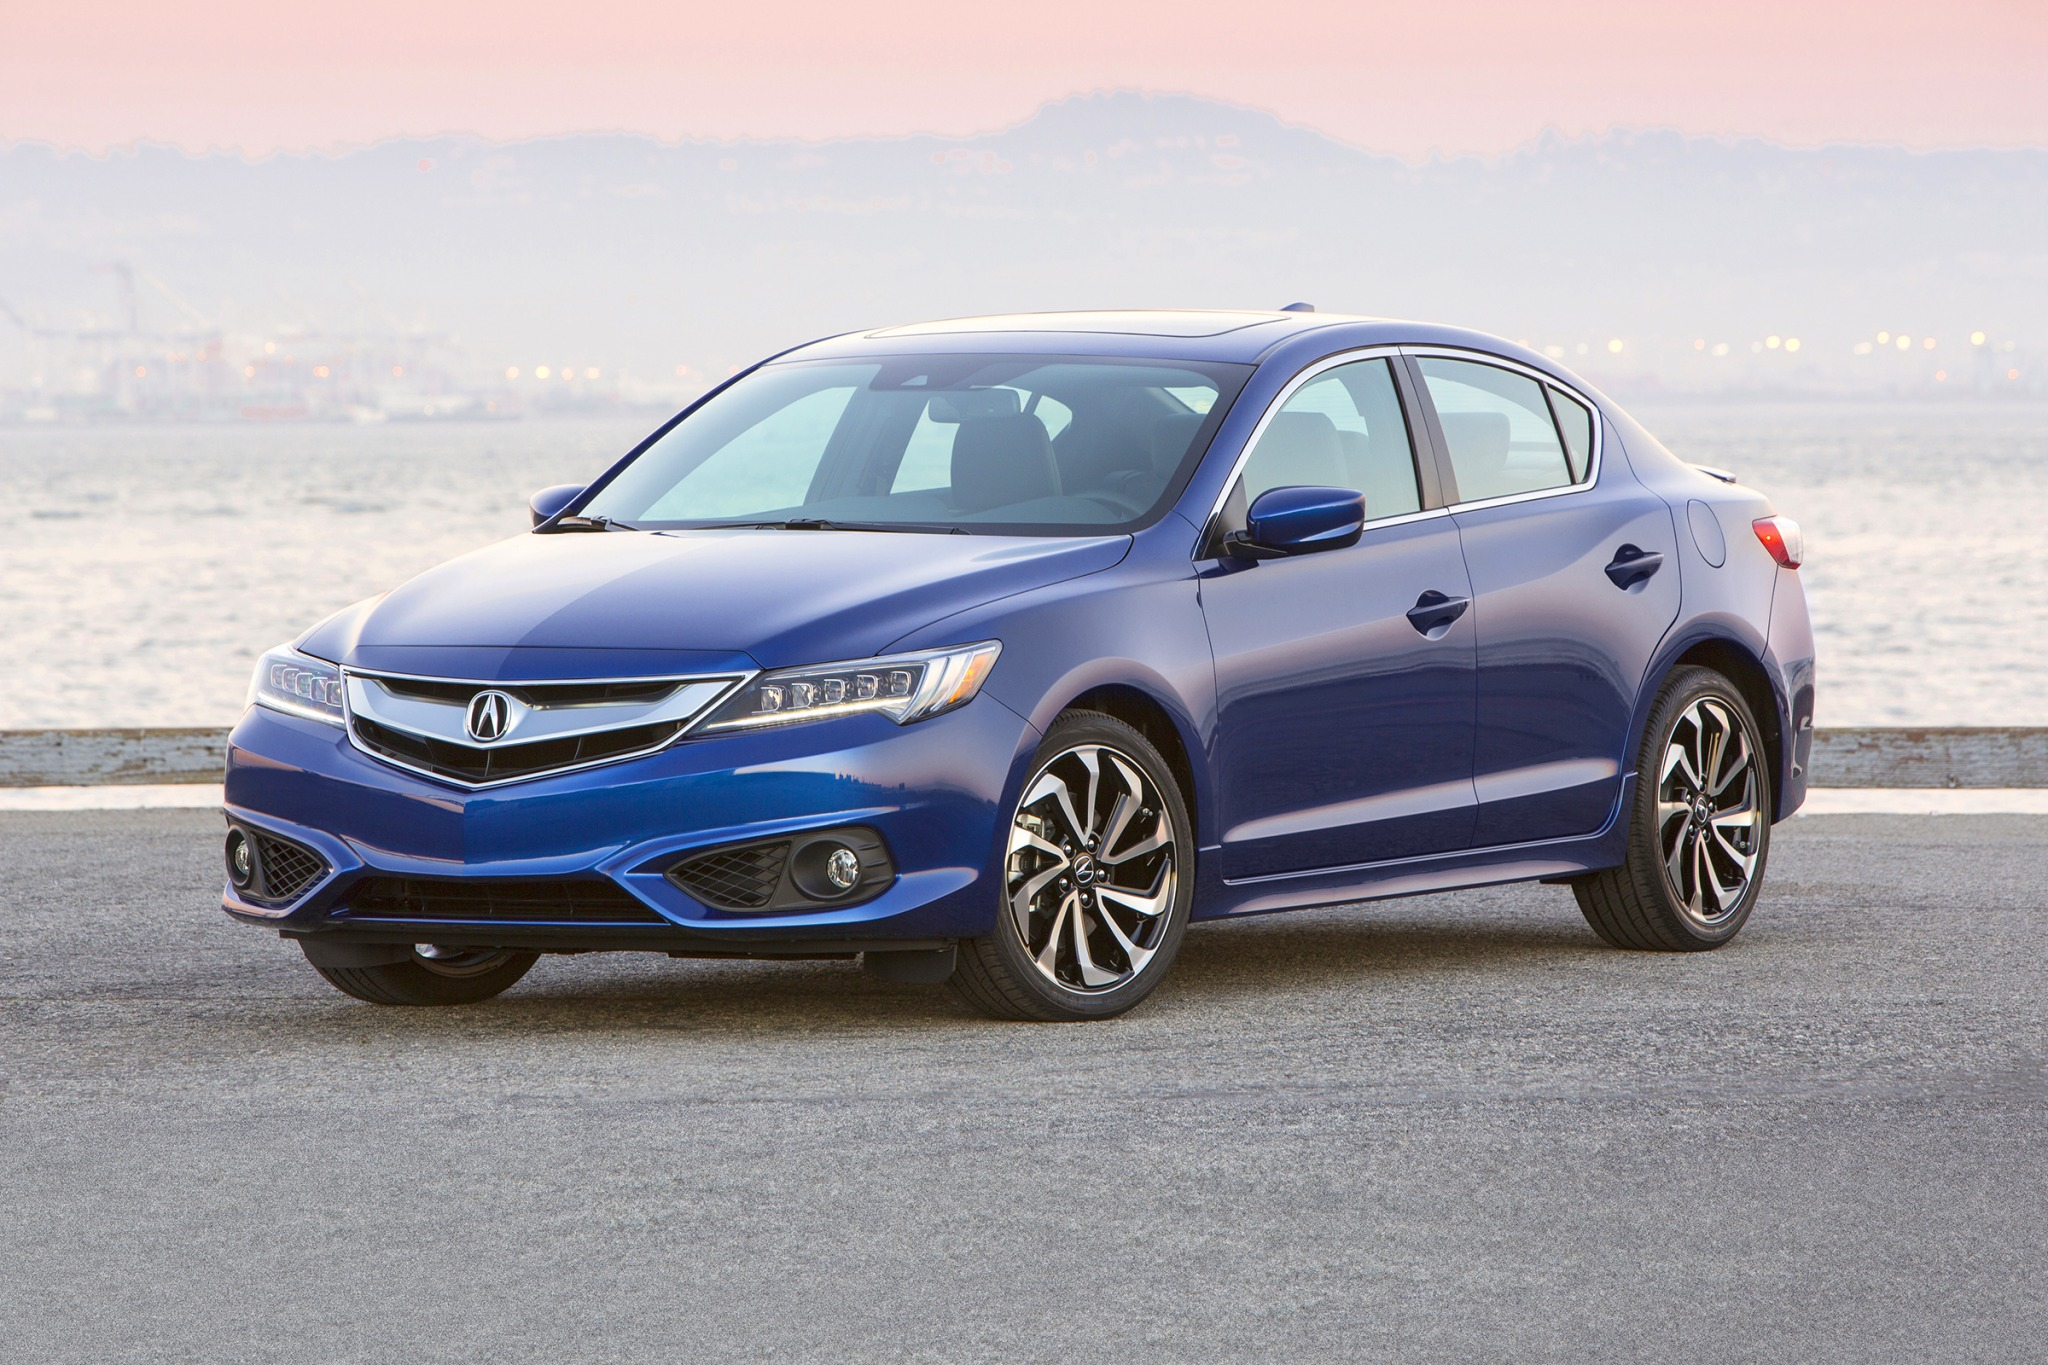 2018 acura ilx sedan technology plus and a spec packages fq oem 1 2048